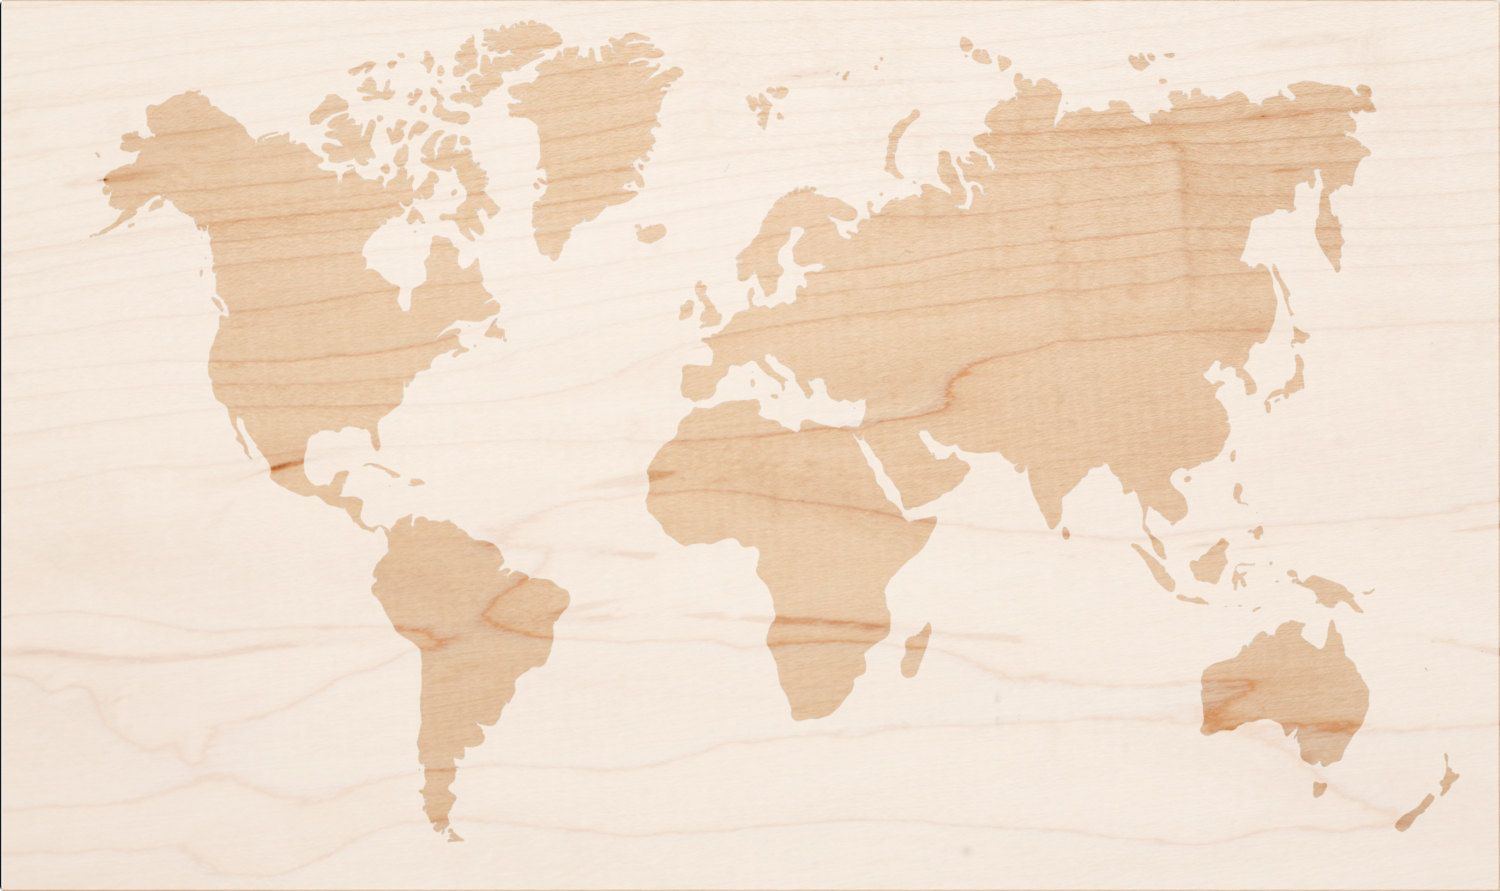 DIY World Map Stencil XL   Plastic (not A Sticker). For Wood/ Home Design/  Home Decor Applications By Wallmaps On Etsy ...